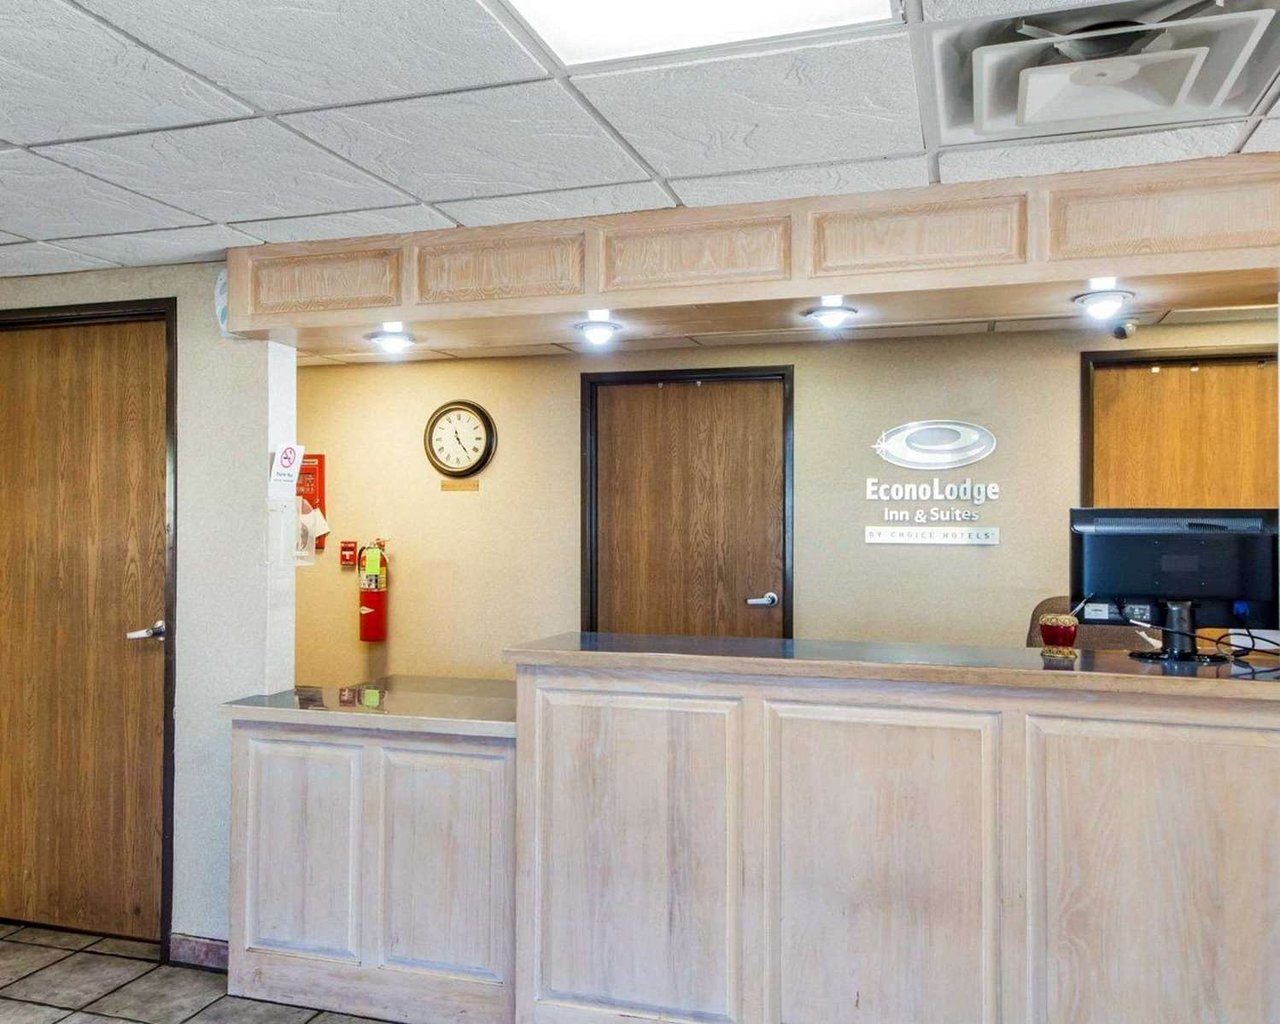 Econolodge Inn And Suites 43 5 4 Prices Hotel Reviews